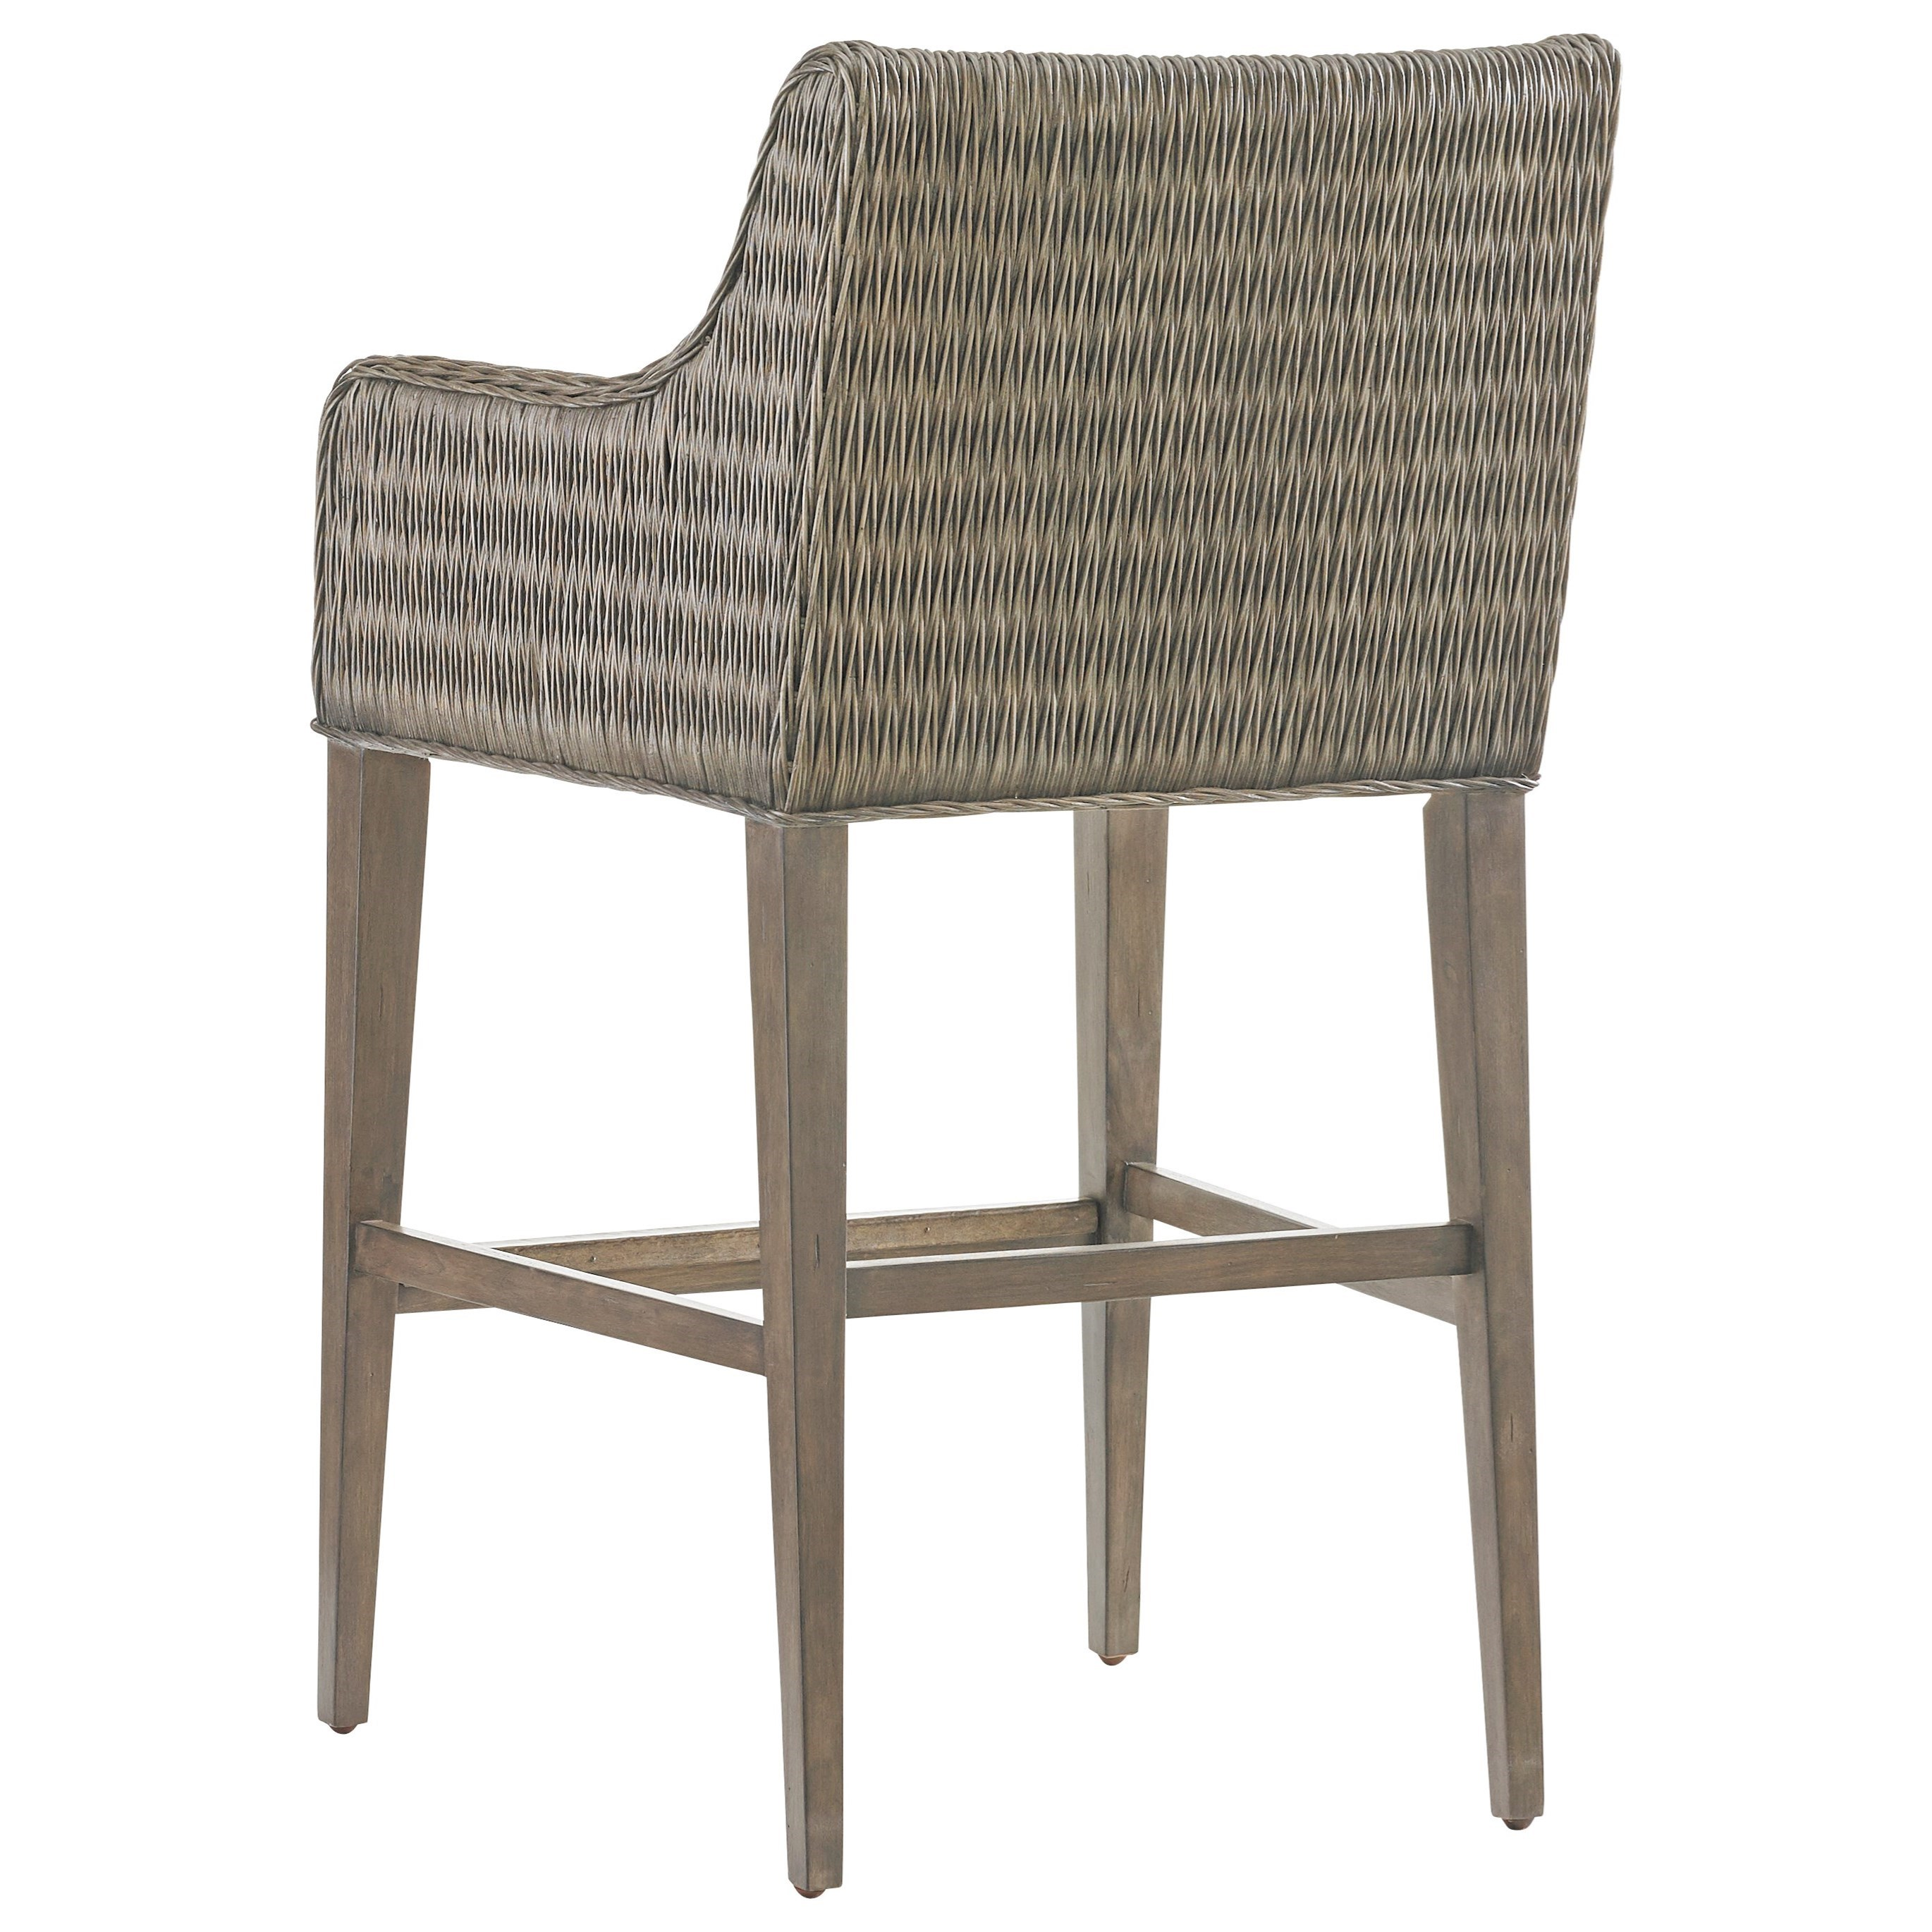 Tommy Bahama Home Cypress Point Turner Woven Rattan Bar  : products2Ftommybahamahome2Fcolor2Fcypress20point 1900098683562 896 b3 from www.reedsfurniture.com size 2740 x 2740 jpeg 823kB